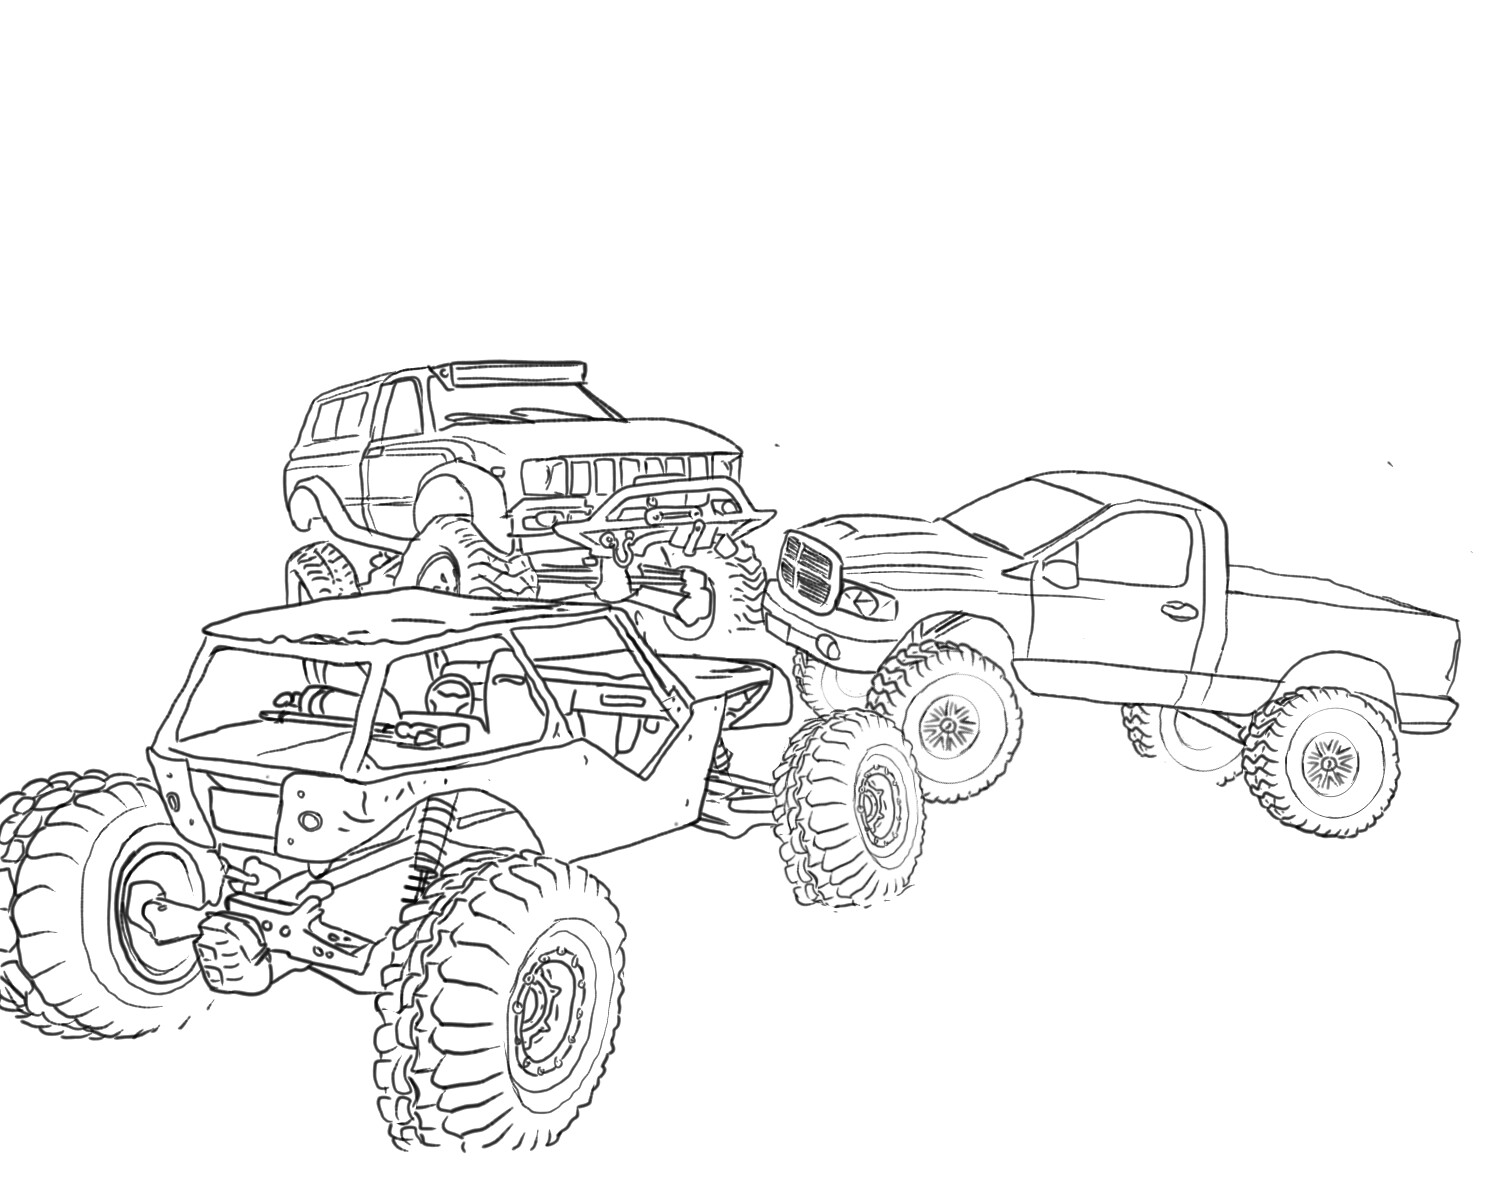 rc car coloring pages turbo charged fun for your child39s race car birthday party coloring car rc pages